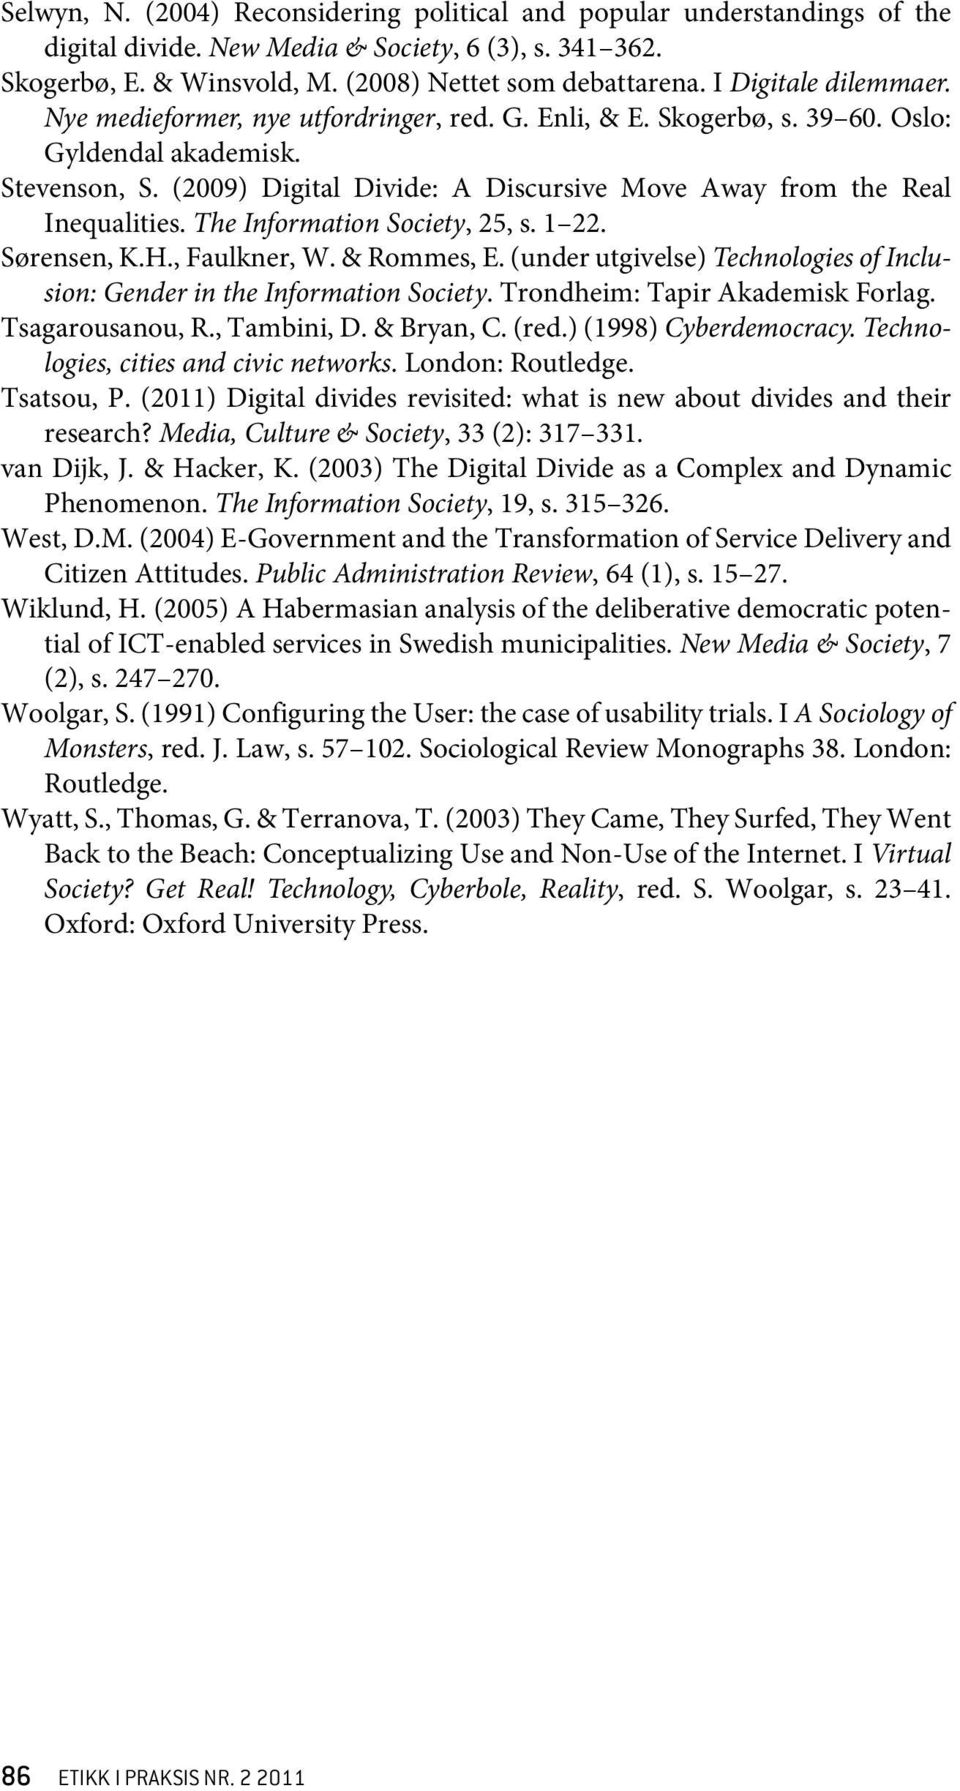 (2009) Digital Divide: A Discursive Move Away from the Real Inequalities. The Information Society, 25, s. 1 22. Sørensen, K.H., Faulkner, W. & Rommes, E.